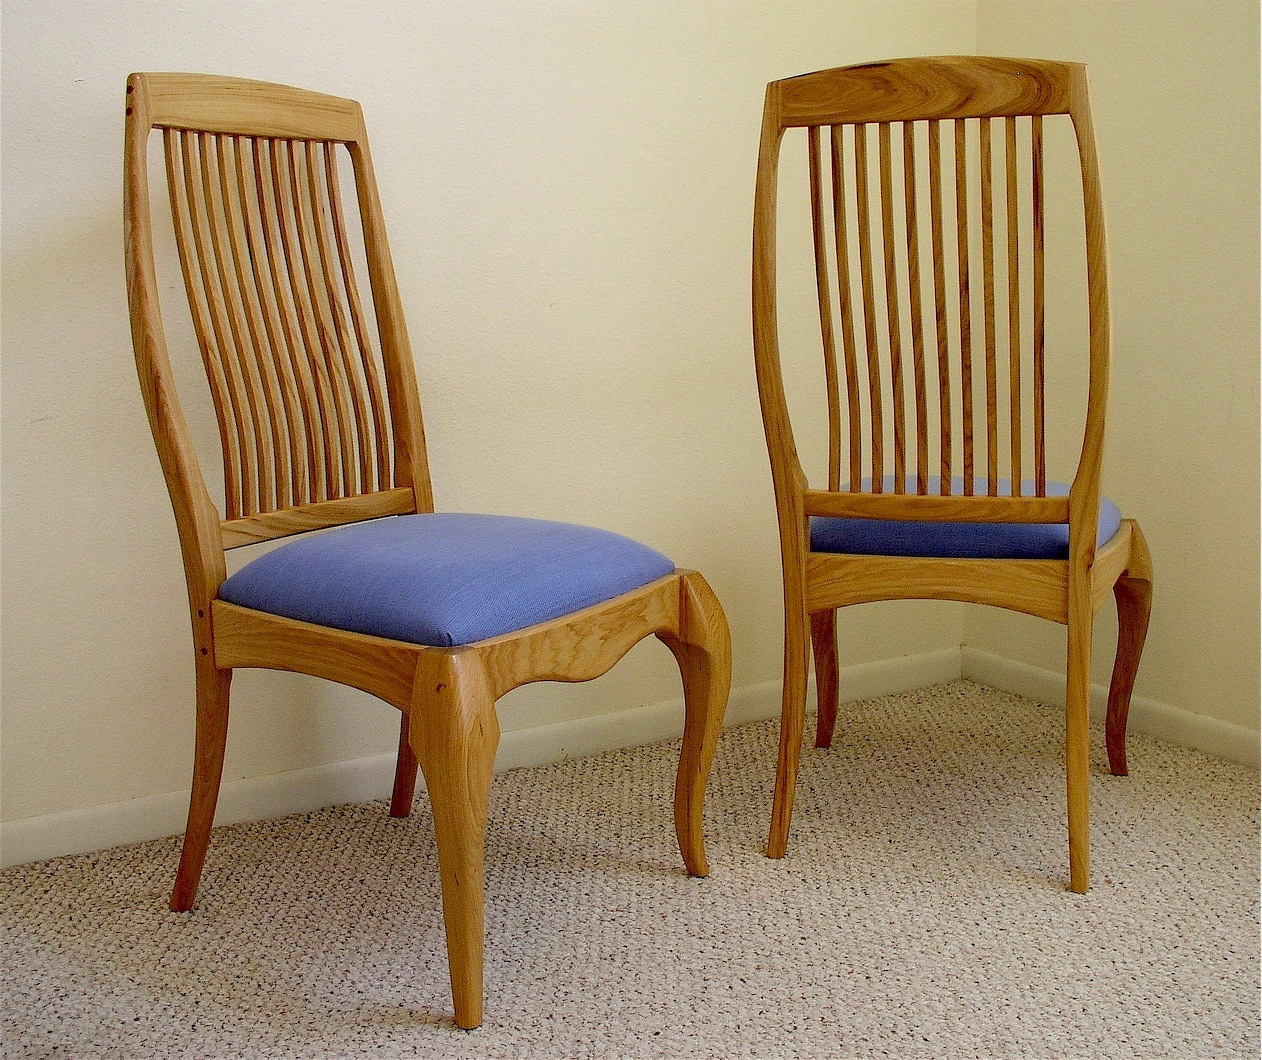 My Furniture Gallery – Louis Fry A Furniture Maker s Blog